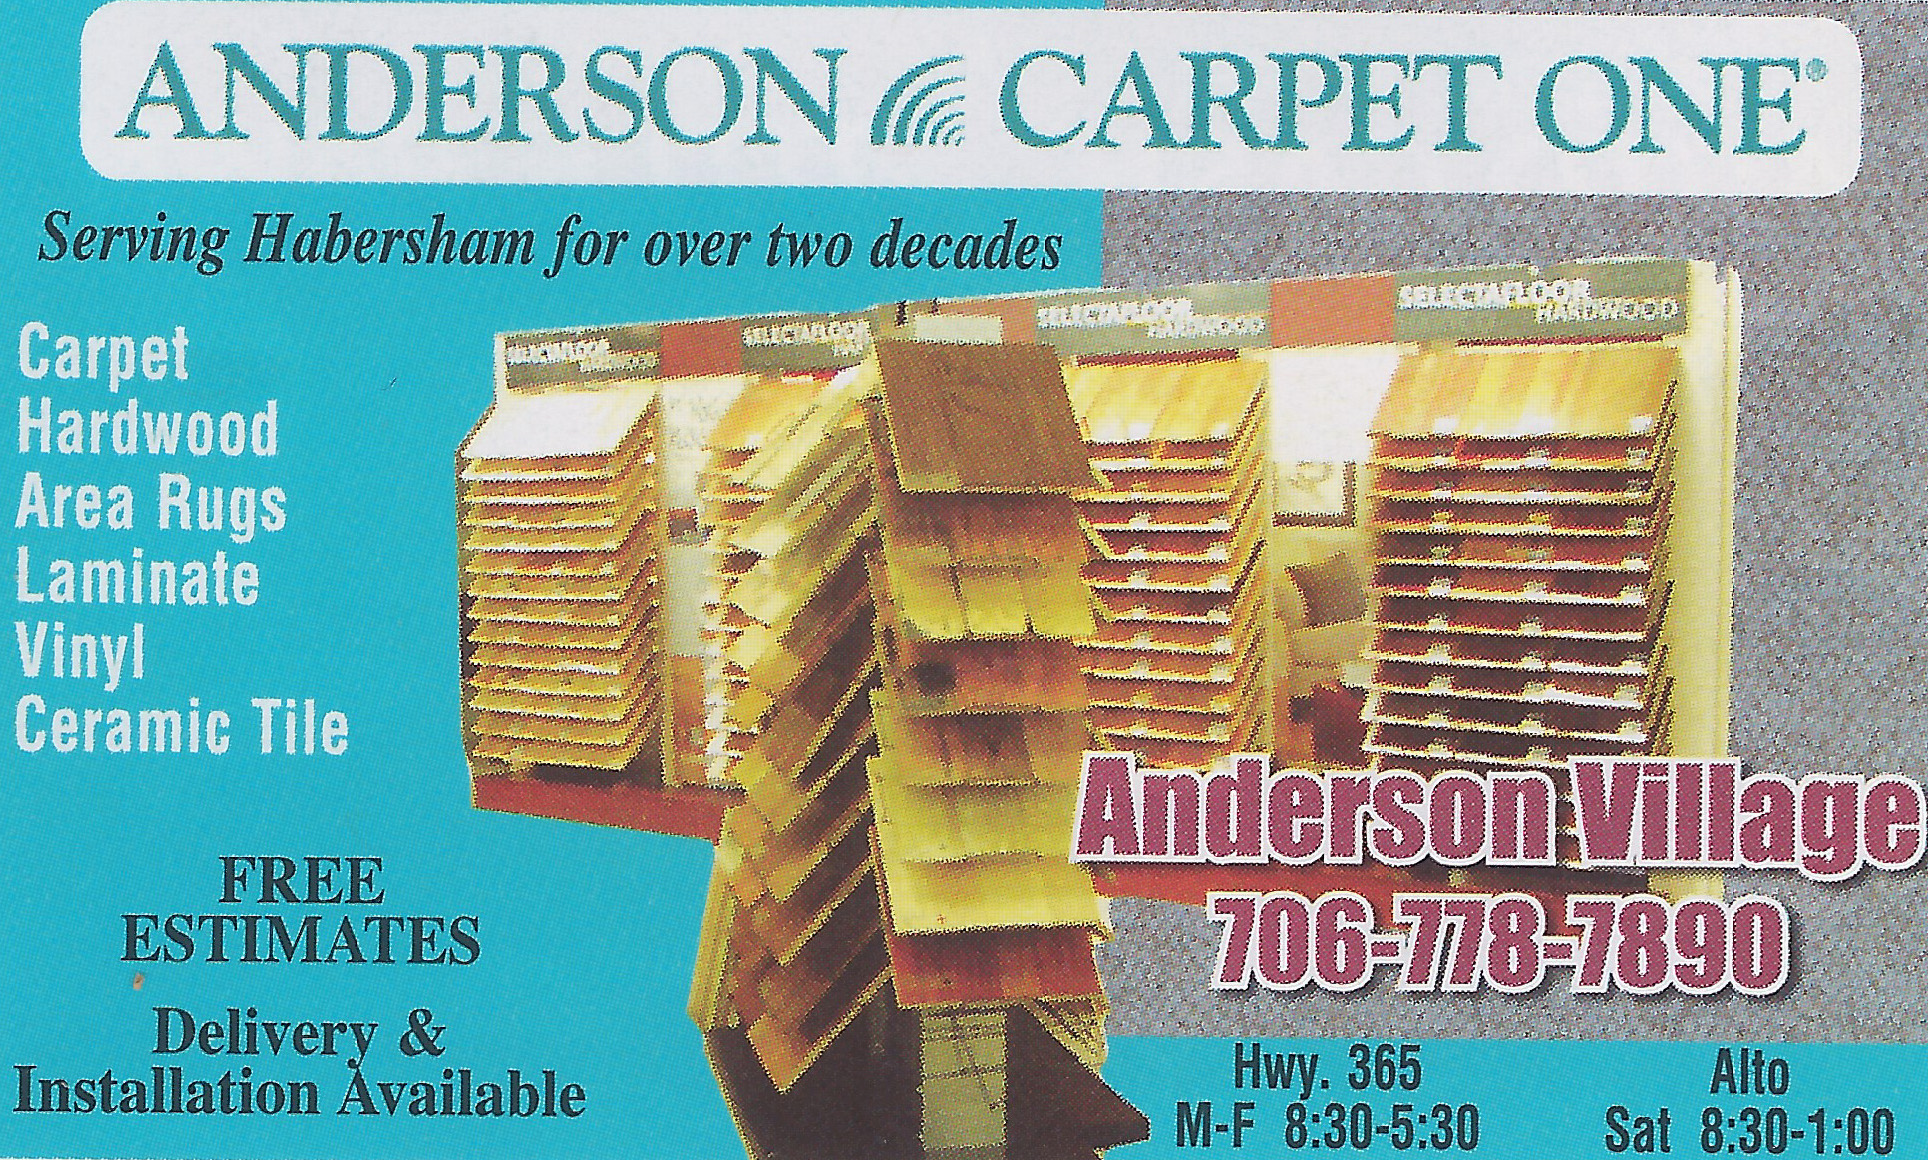 Anderson Carpet One